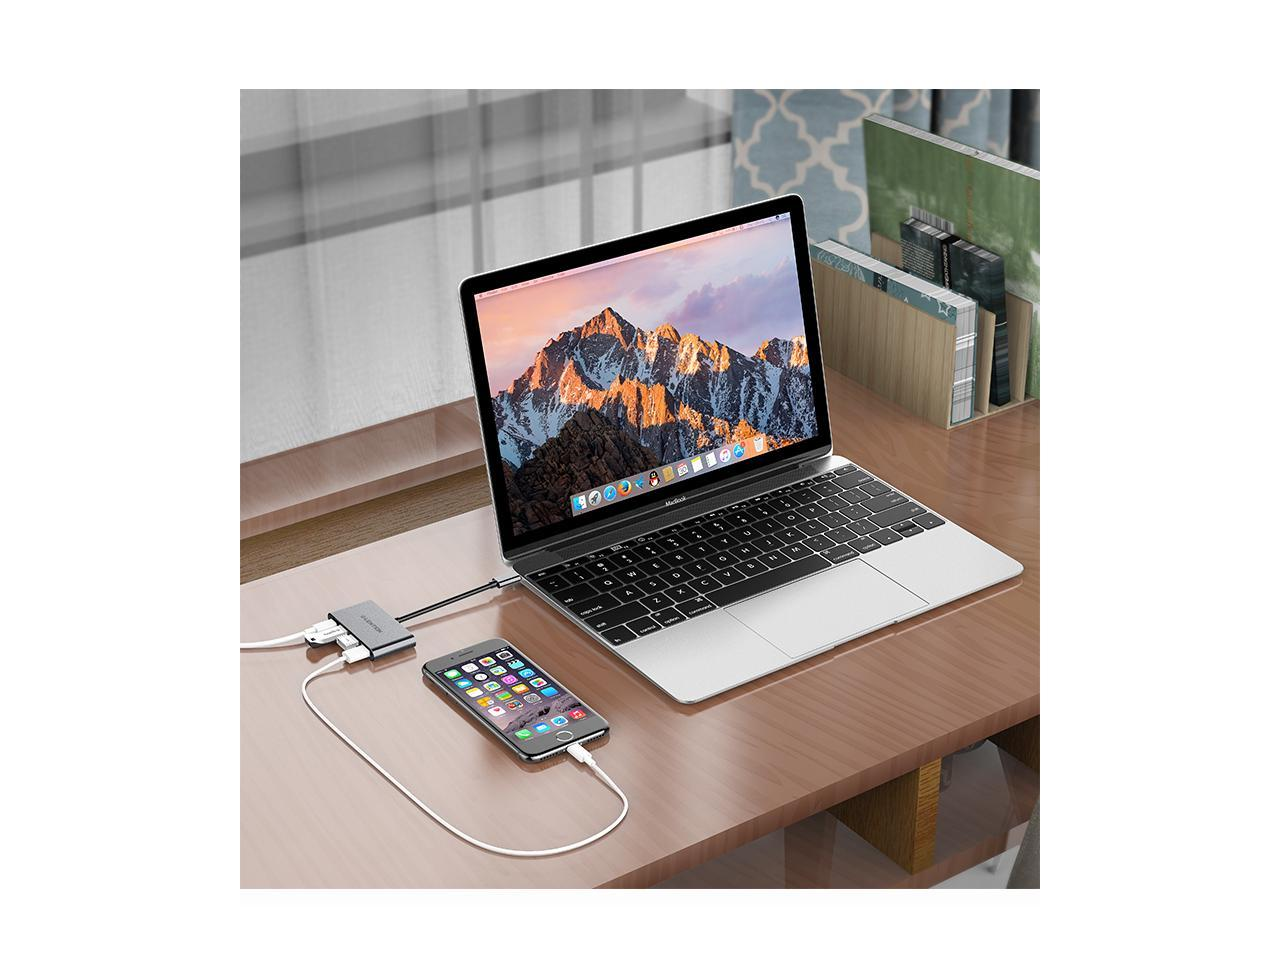 New Mac Air//Surface 3*USB3.0 Compatible 2020-2016 MacBook Pro 13//15//16 C13se, Space Gray LENTION 4-in-1 USB-C Hub with Type C Multiport Charging /& Connecting Adapter More ChromeBook